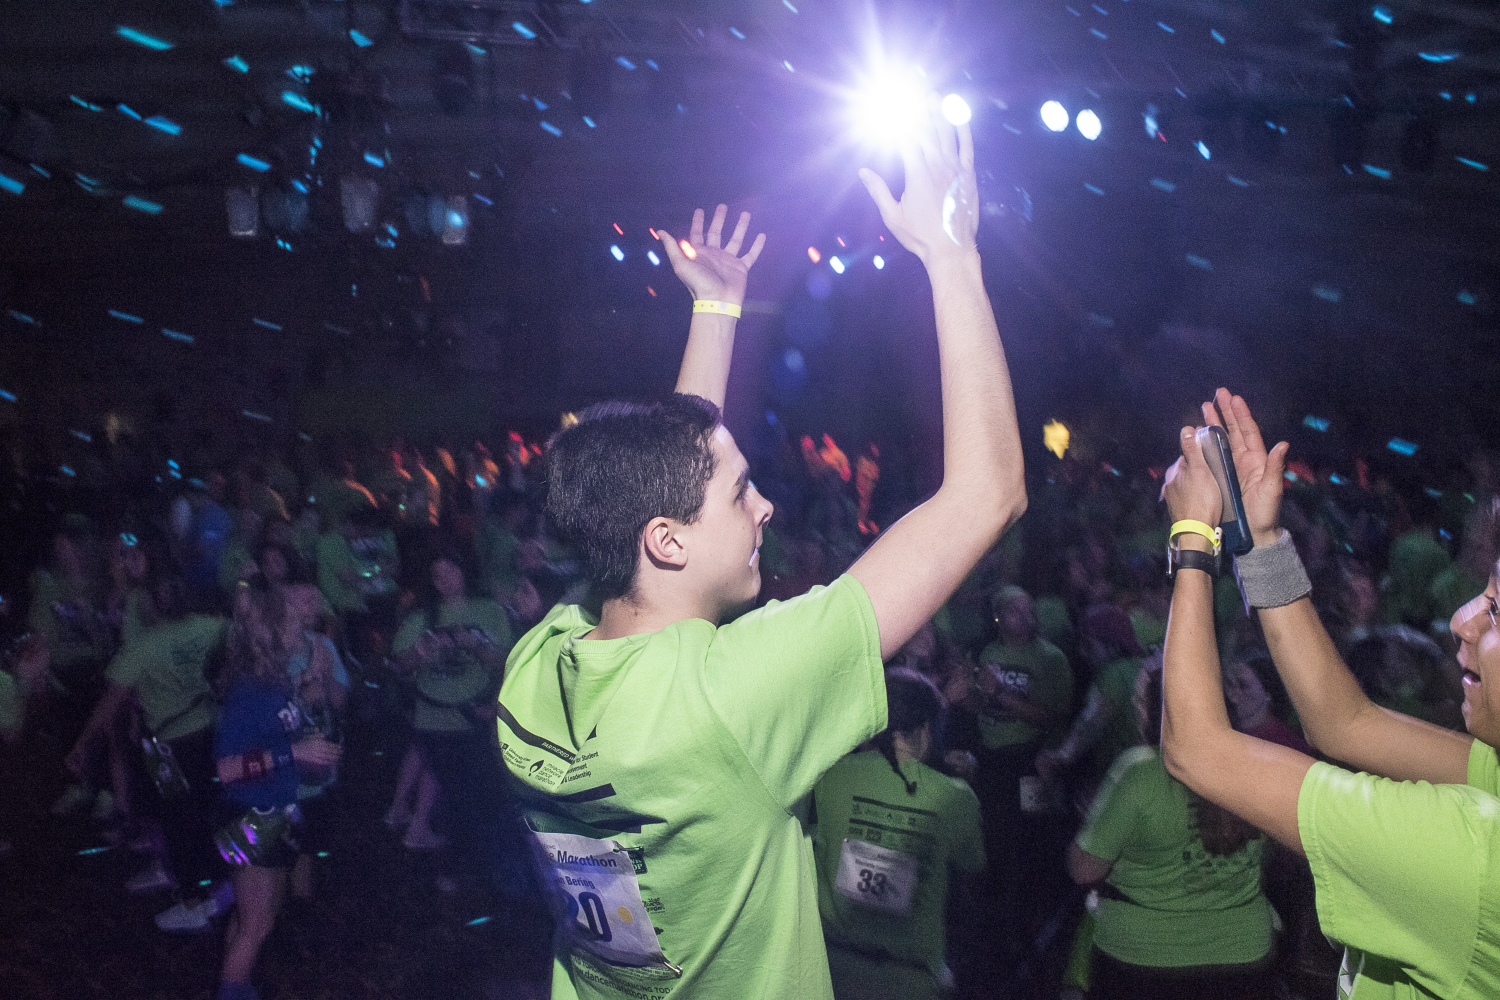 Dancers on the stage motivate the crowd at Dance Marathon in the Iowa Memorial Union on Friday, Feb. 2, 2018. (James Year/The Daily Iowan)